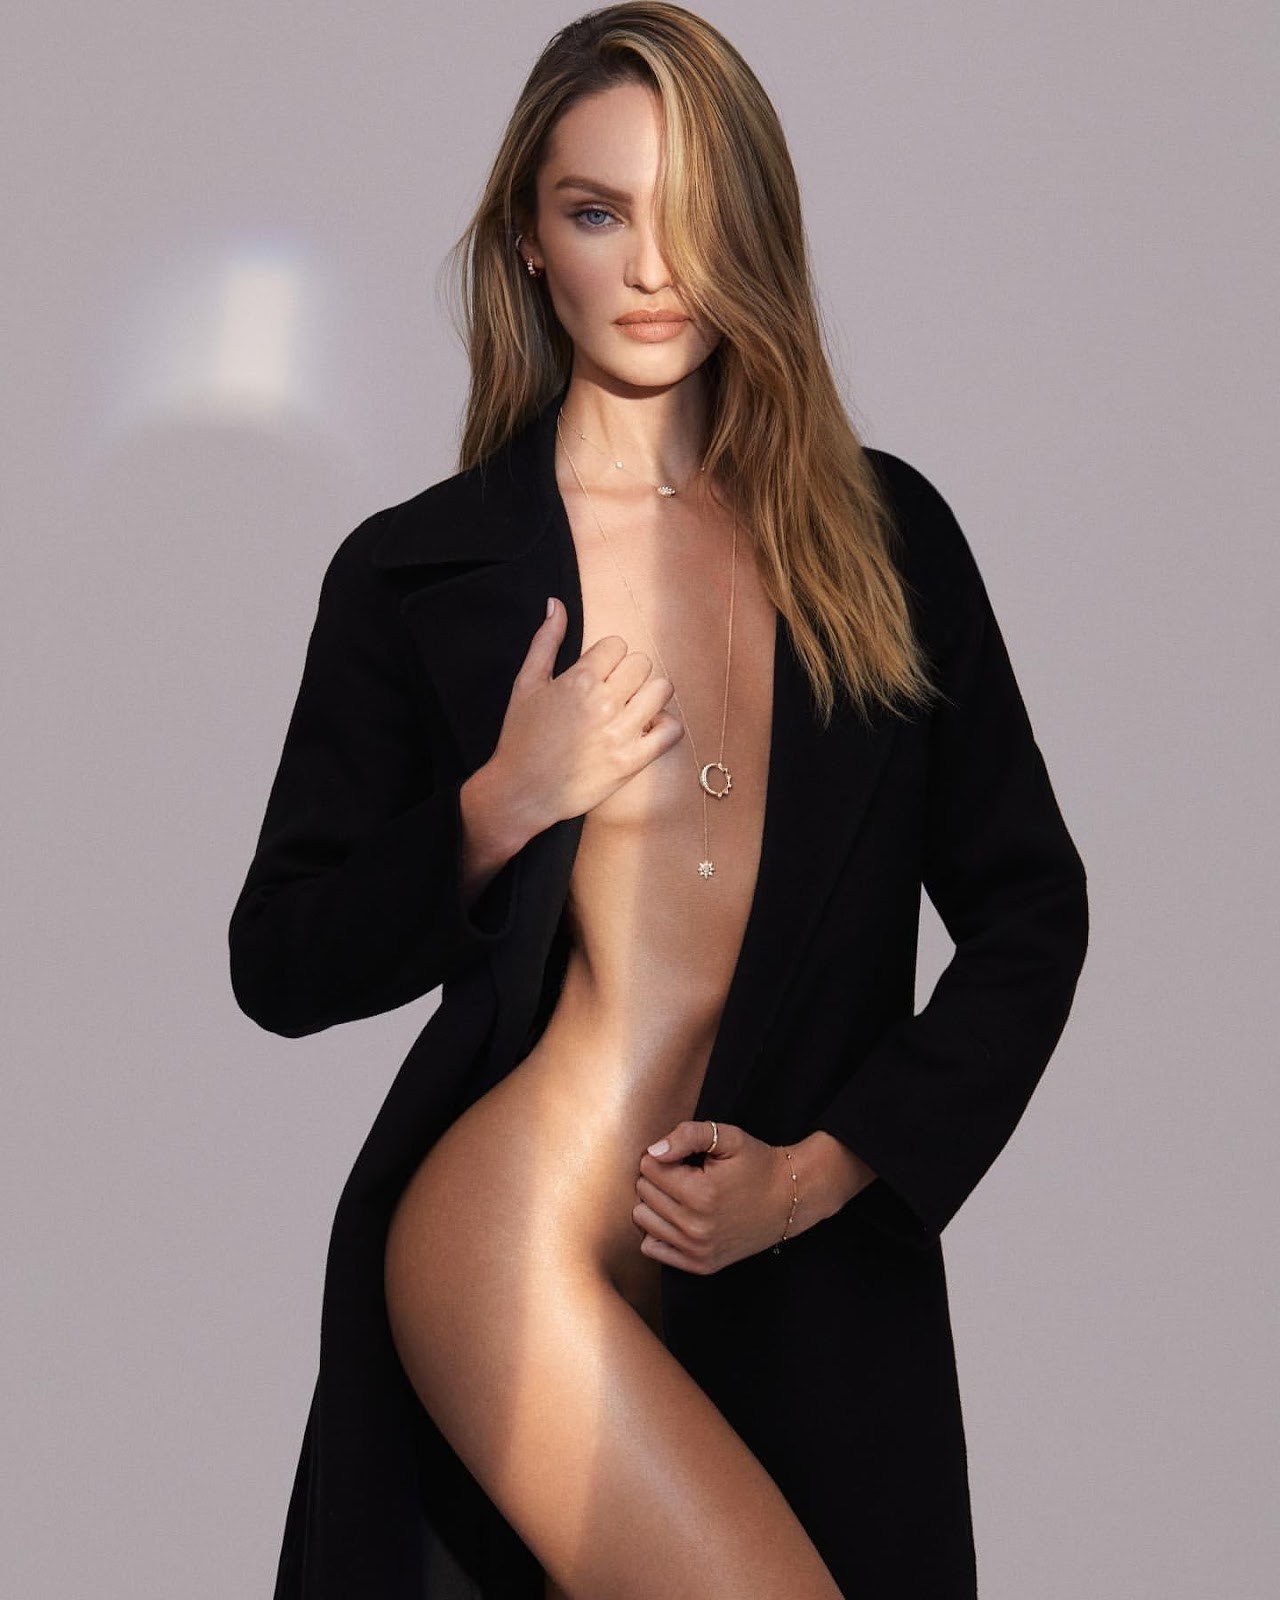 Candice Swanepoel goes topless for Logan Hollowell Jewelry